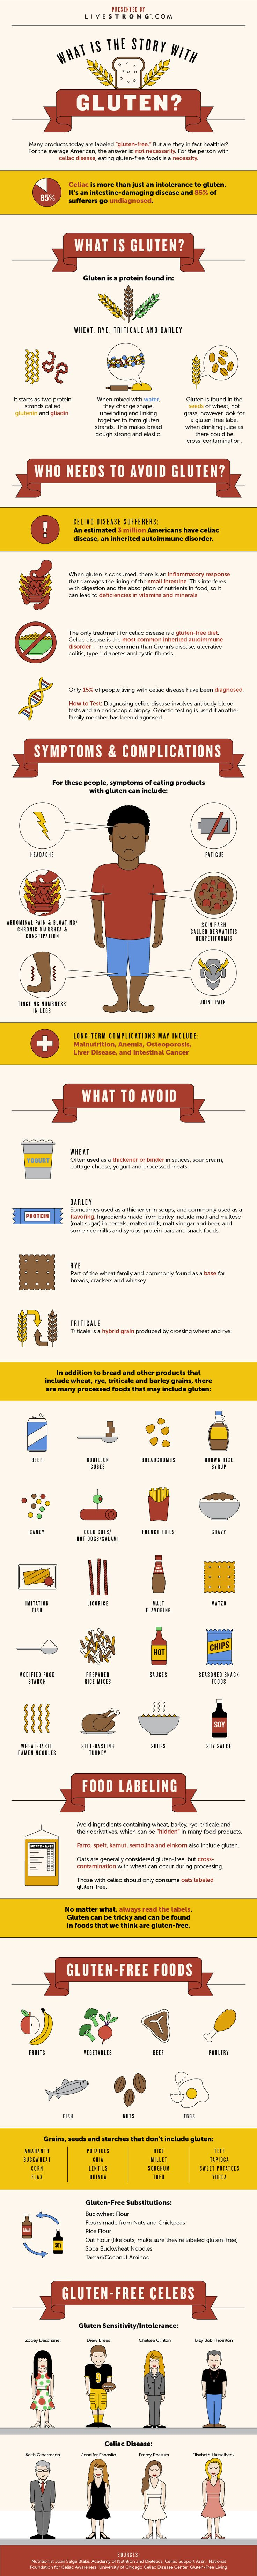 What's the Deal With Gluten? This is a great explanation of gluten. Also breaks down foods that contain gluten as well as foods that are gluten free. Oh and learn a few celebs that have gluten sensitivities as well as full blown celiac.